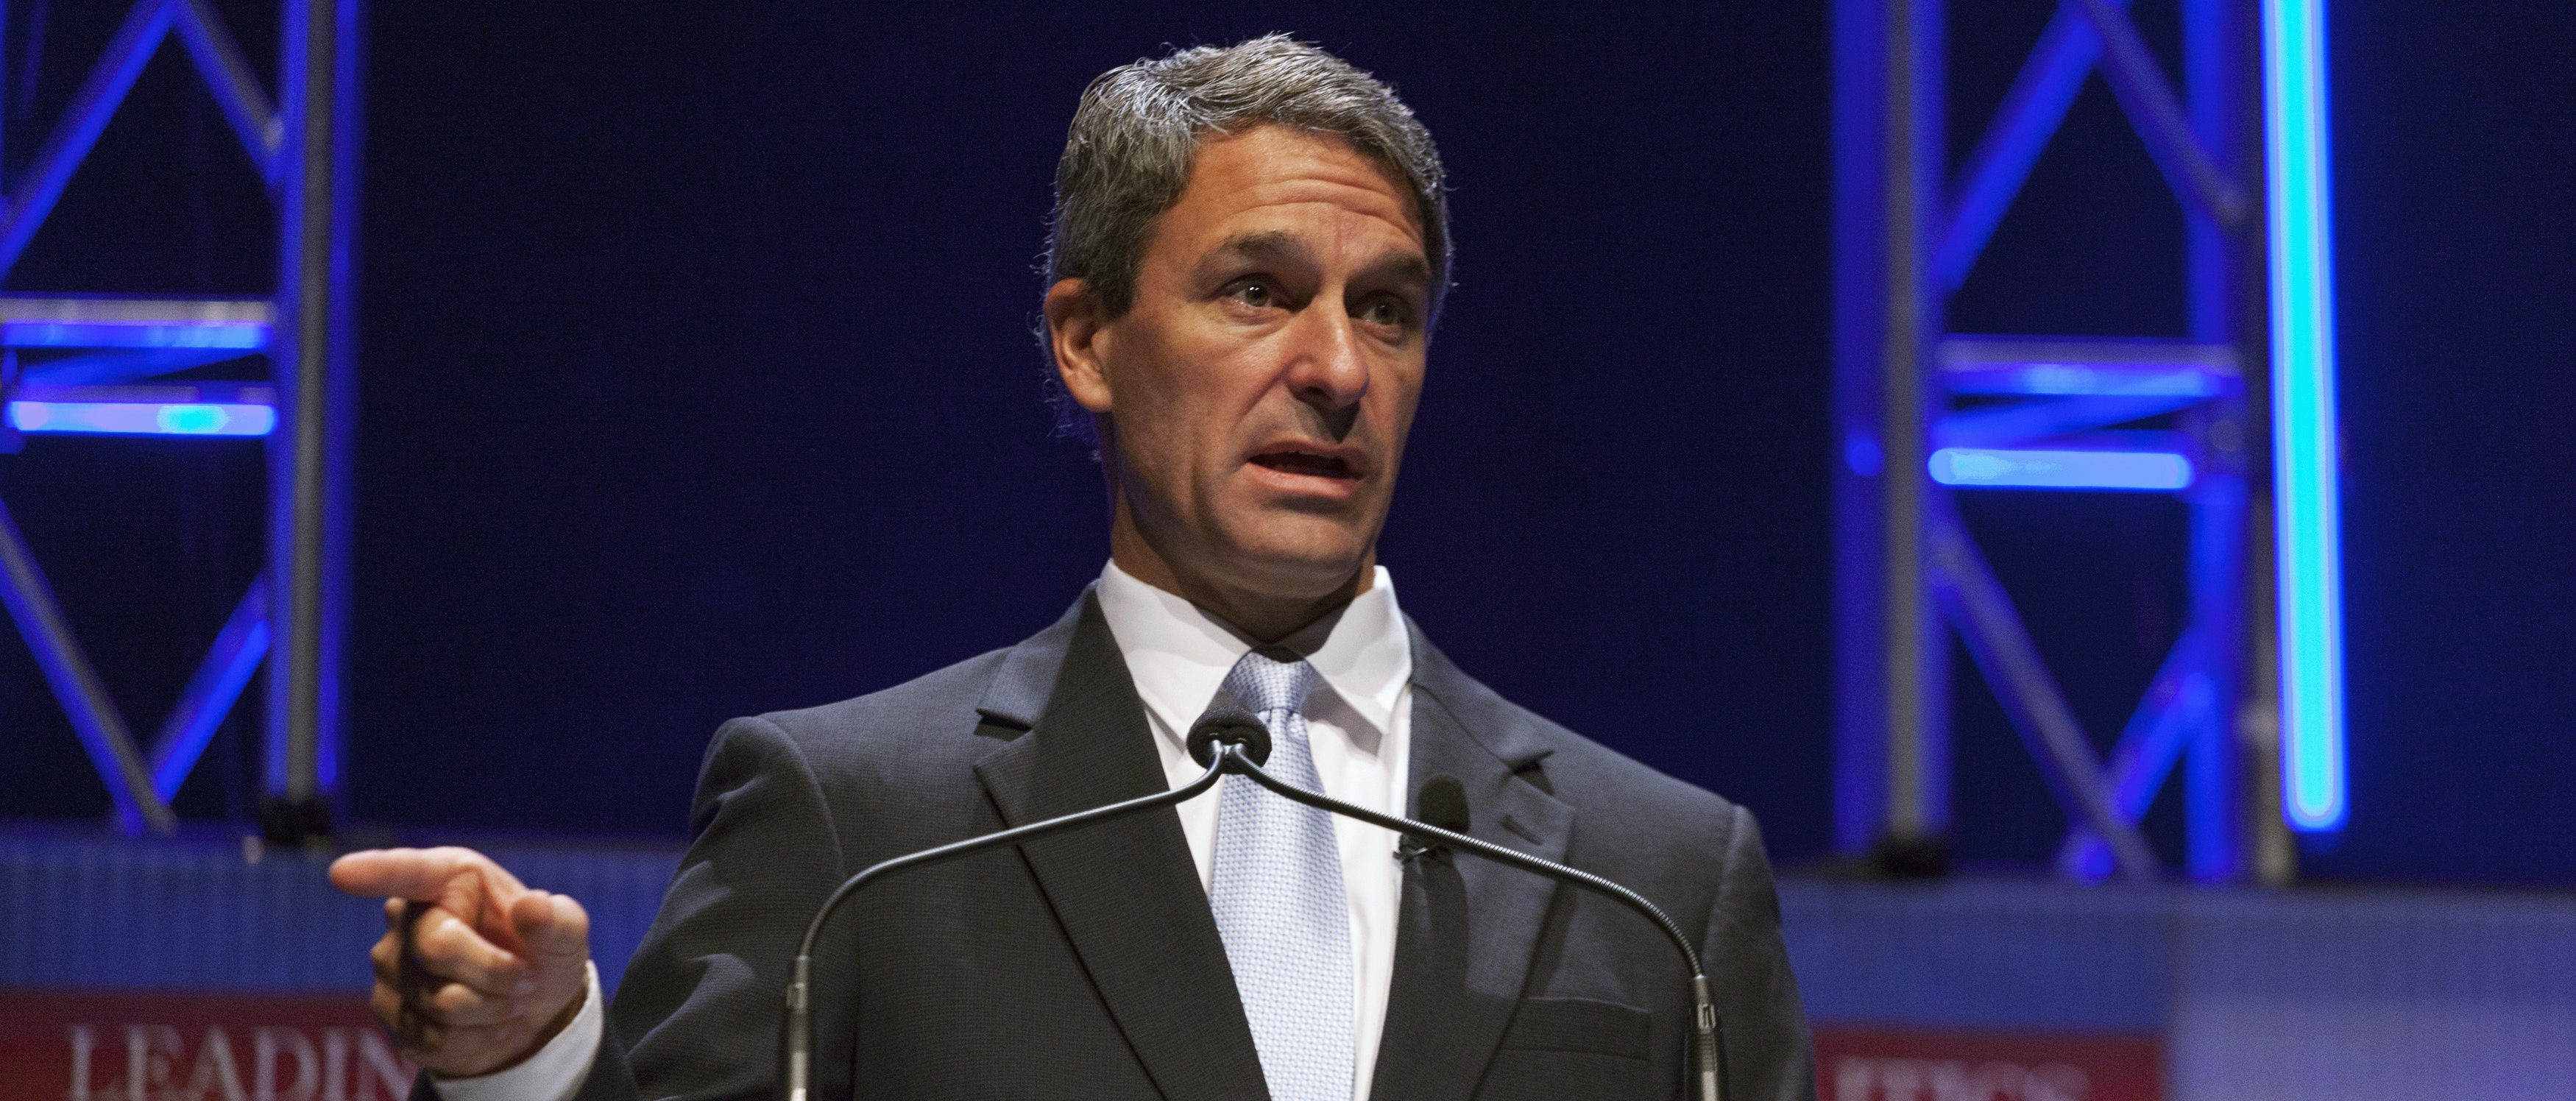 Former Virginia Attorney General Ken Cuccinelli speaks at the Family Leadership Summit in Ames, Iowa August 9, 2014. The pro-family Iowa organization is hosting the event in conjunction with national partners Family Research Council Action and Citizens United. REUTERS/Brian Frank? (UNITED STATES - Tags: POLITICS BUSINESS)